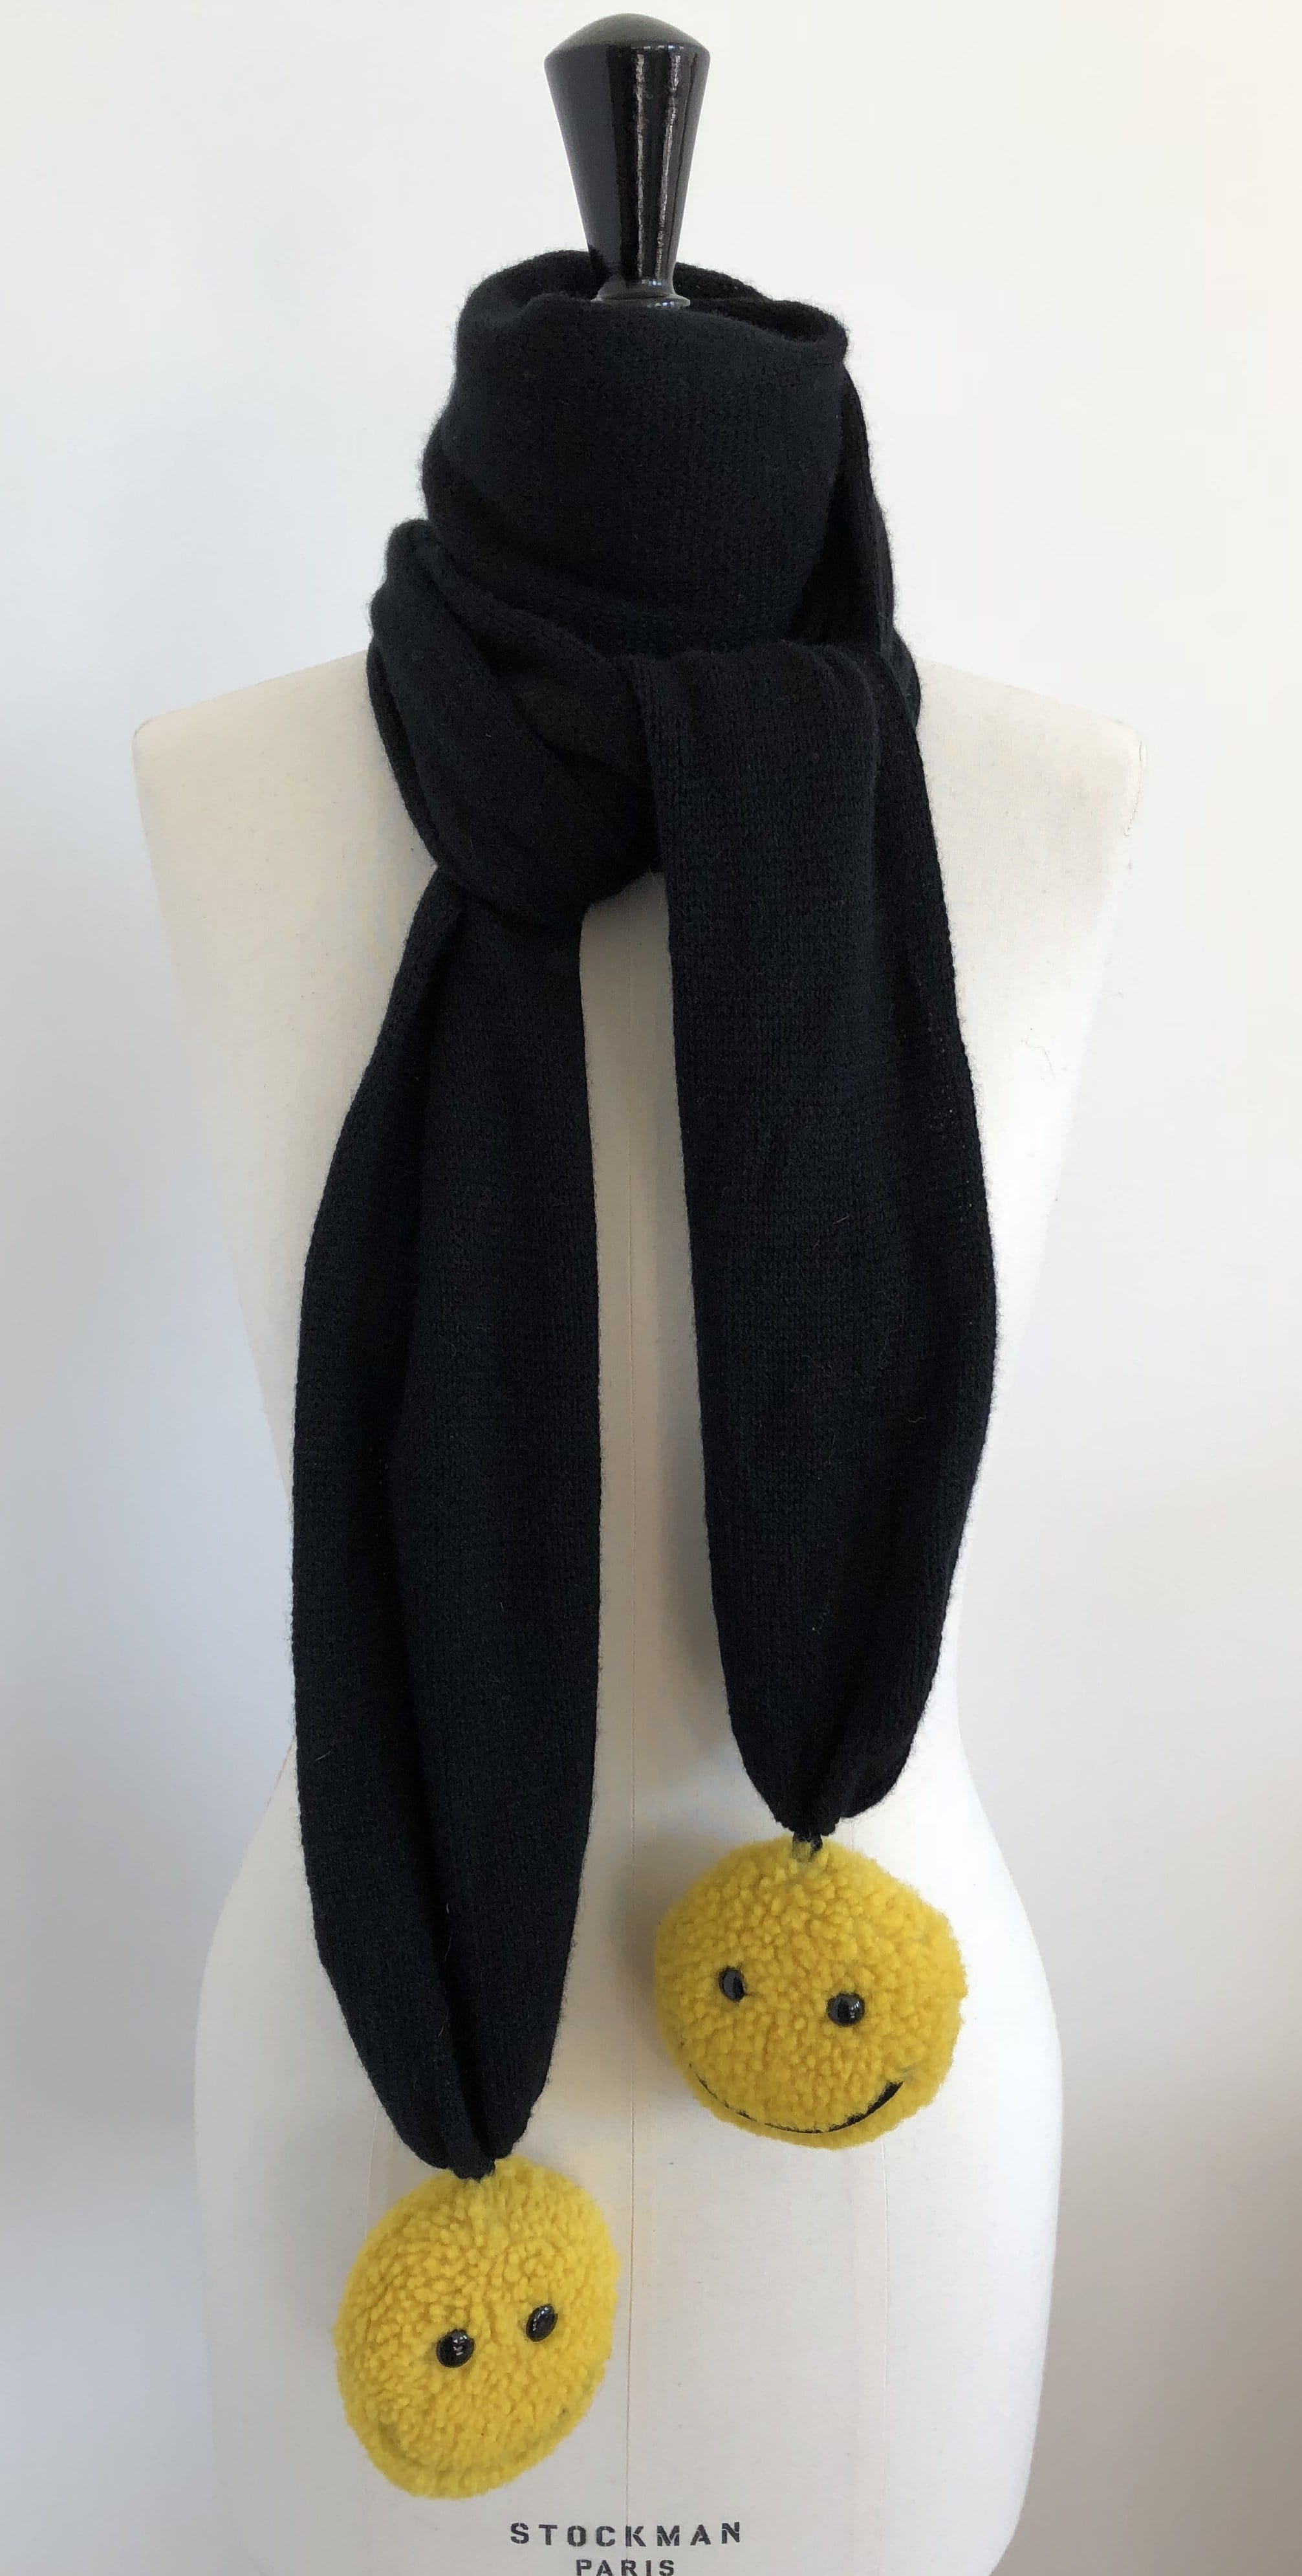 Écharpe Evesome maille mousseuse 100% cachemire avec pompons en fourrure de mouton Smiley -  Evesome 100% Cashmere Foam Scarf with Smiley Sheepskin Fur Tassels